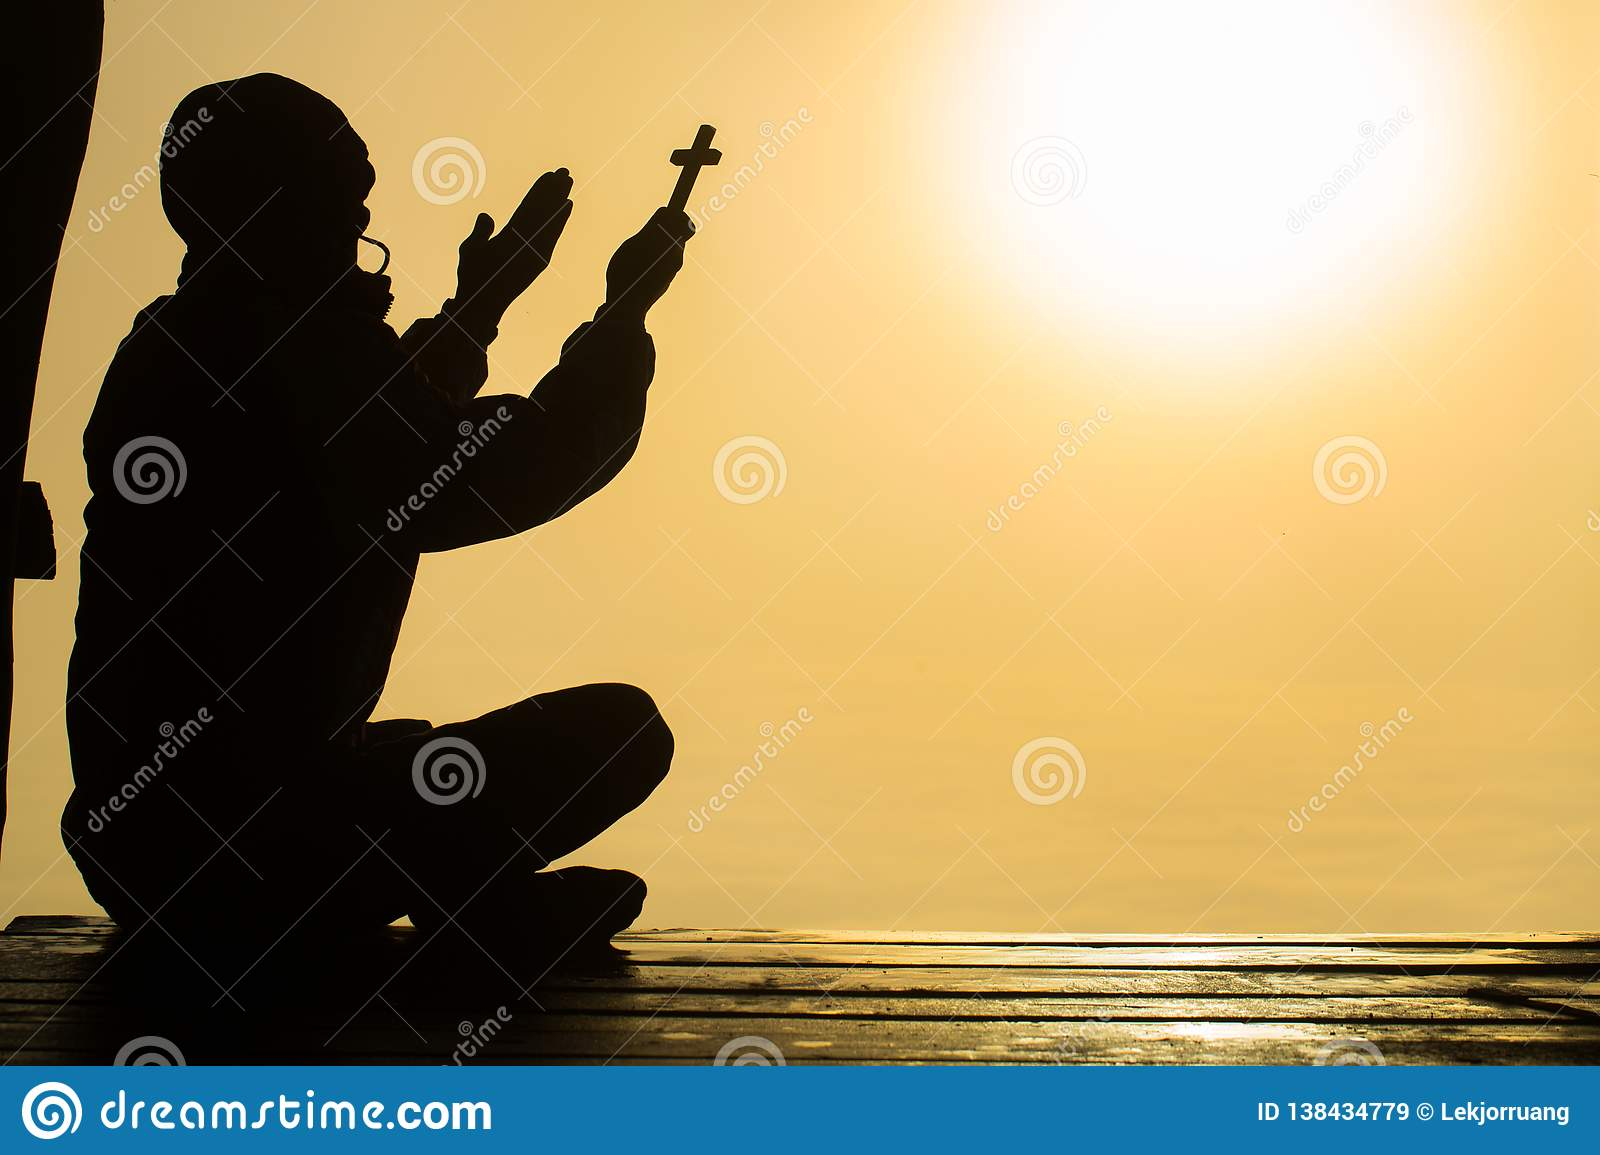 Silhouette of christian young man praying with a cross at sunrise, Christian Religion concept background